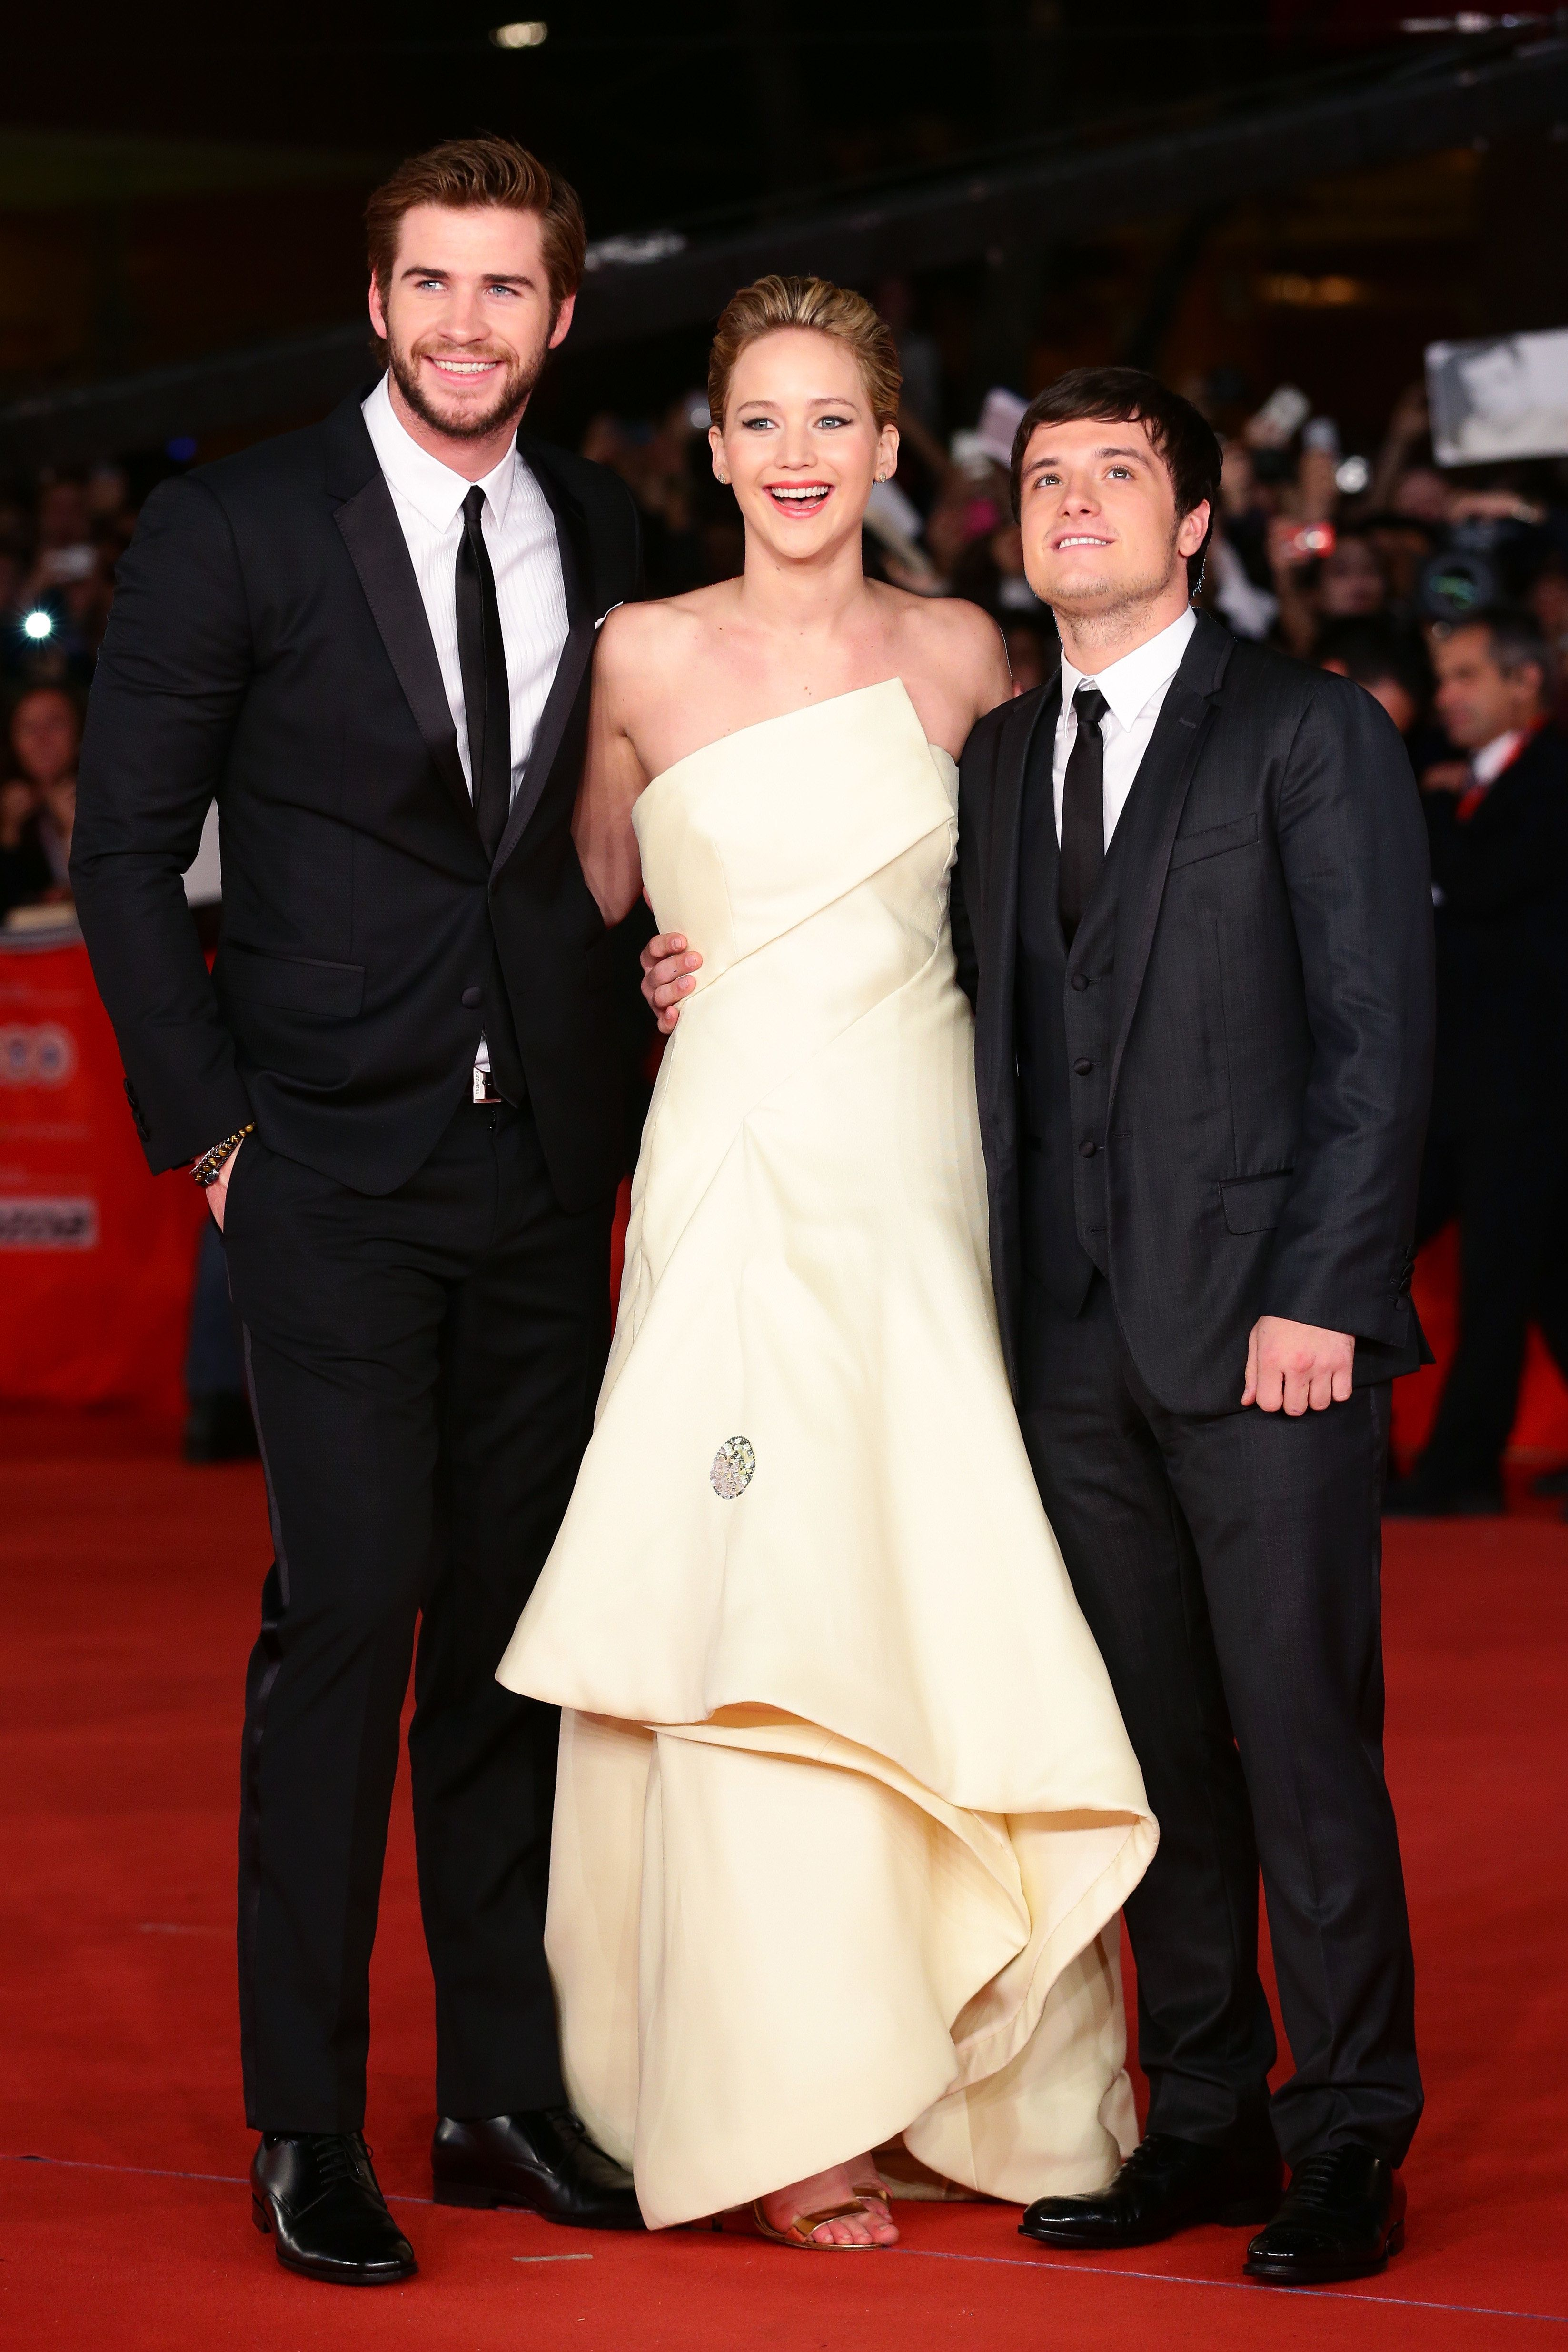 ROME, ITALY - NOVEMBER 14:  (L-R) Actors Liam Hemsworth, Jennifer Lawrence and Josh Hutcherson attend the 'The Hunger Games: Catching Fire' Premiere during The 8th Rome Film Festival at Auditorium Parco Della Musica on November 14, 2013 in Rome, Italy.  (Photo by Vittorio Zunino Celotto/Getty Images)